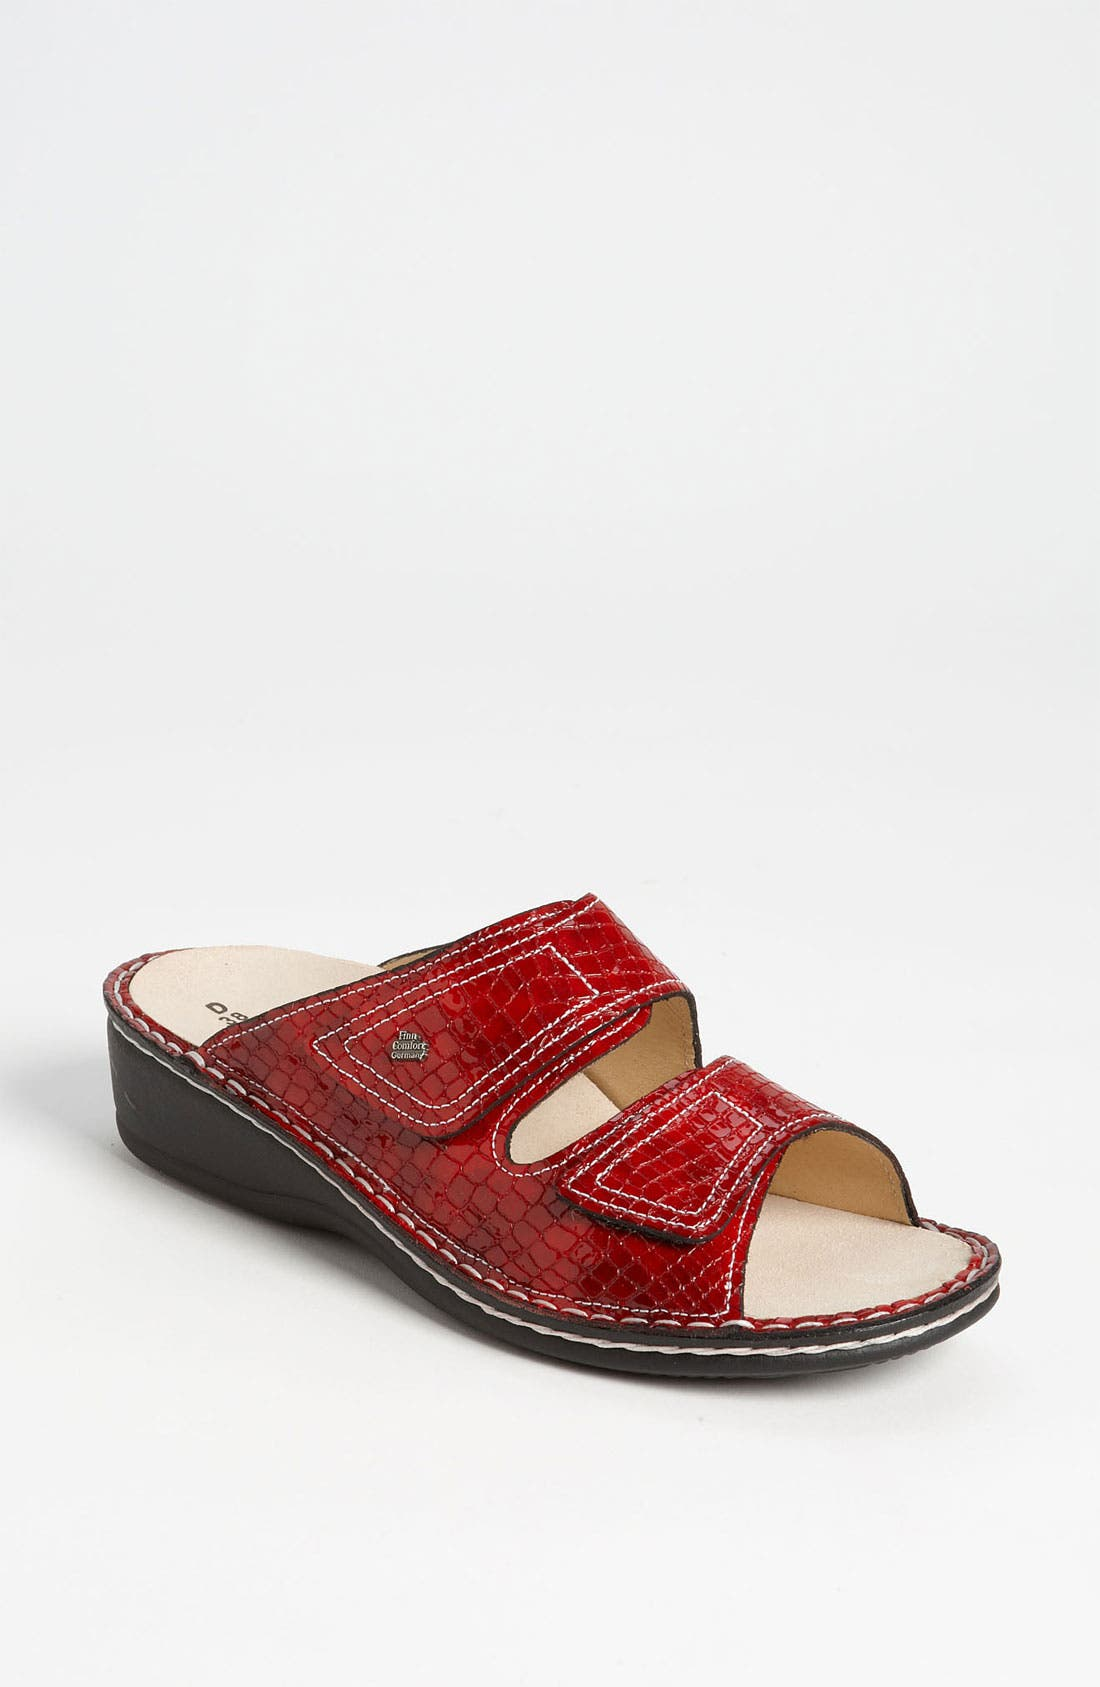 Alternate Image 1 Selected - Finn Comfort 'Jamaica' Sandal (Online Only)